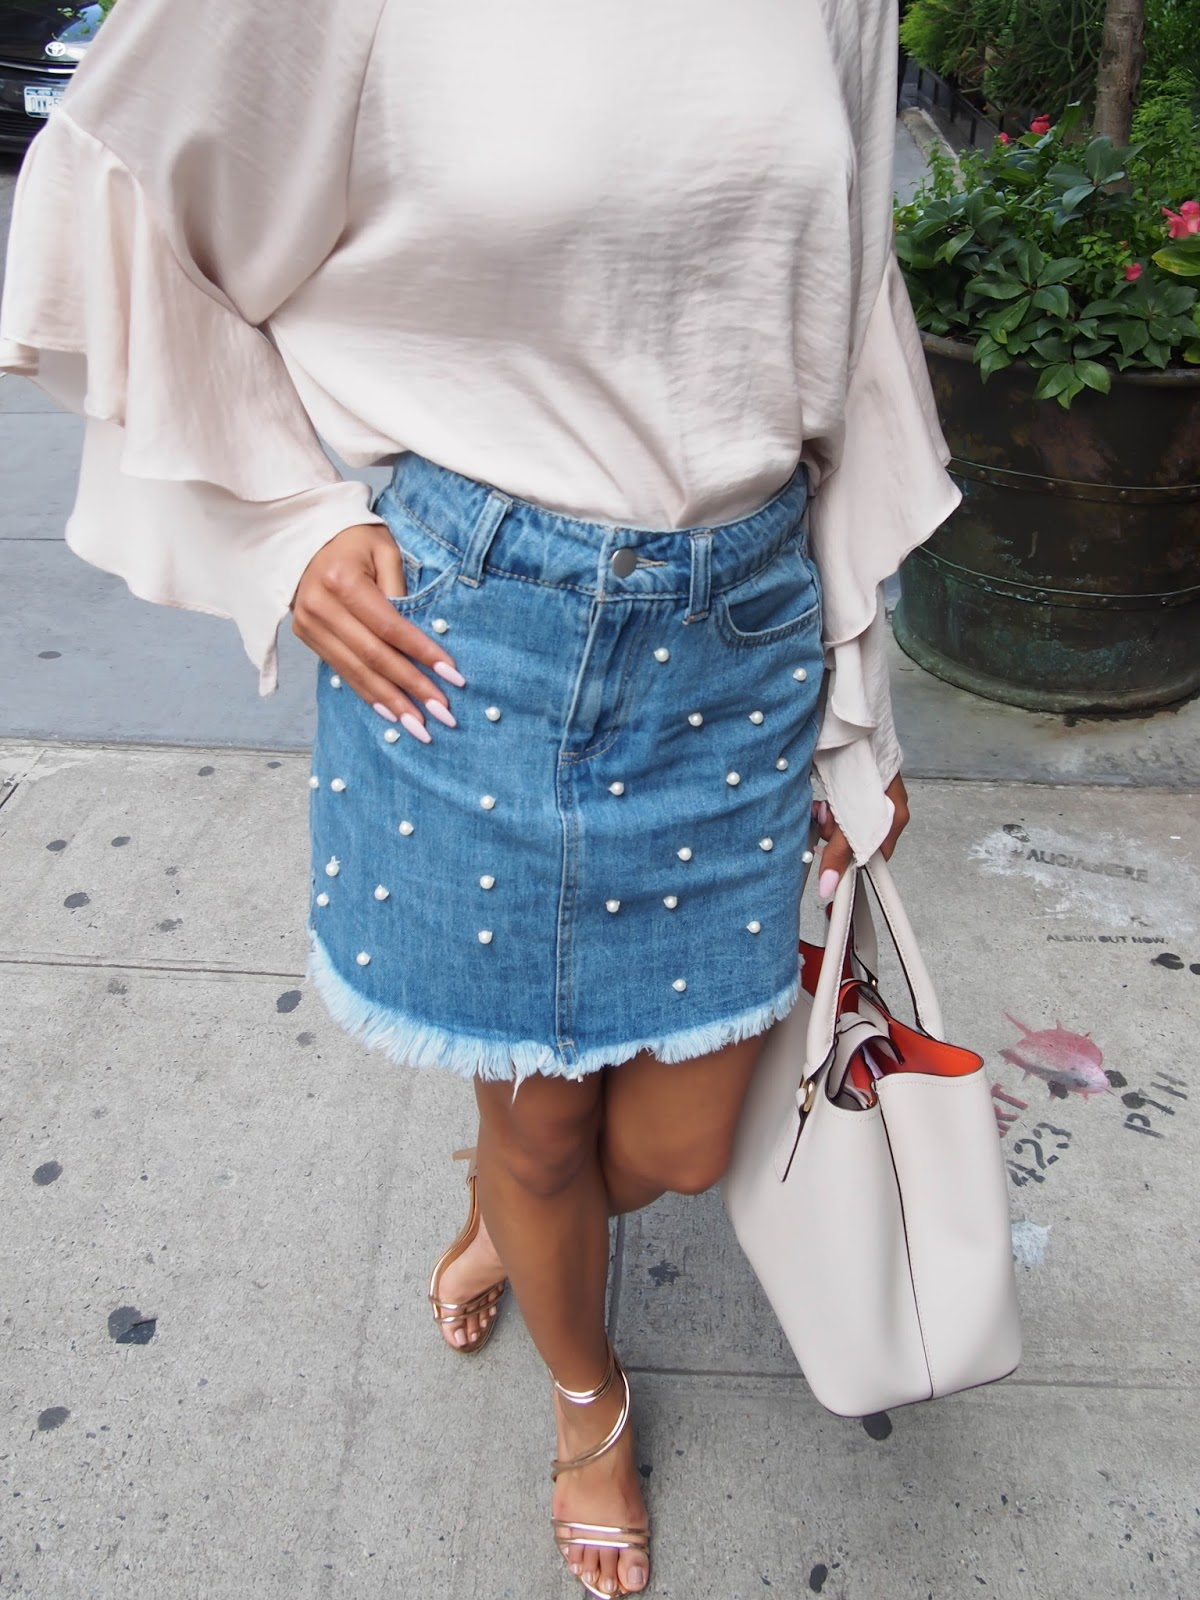 NYFW The Shows, NYFW, street trends, street style 2019, New York Fashion Week, NYFW Street Style, NYFW 2019, The Strong Suit, Pearls, Jean Skirt, Coffin Nails, NC Blogger,